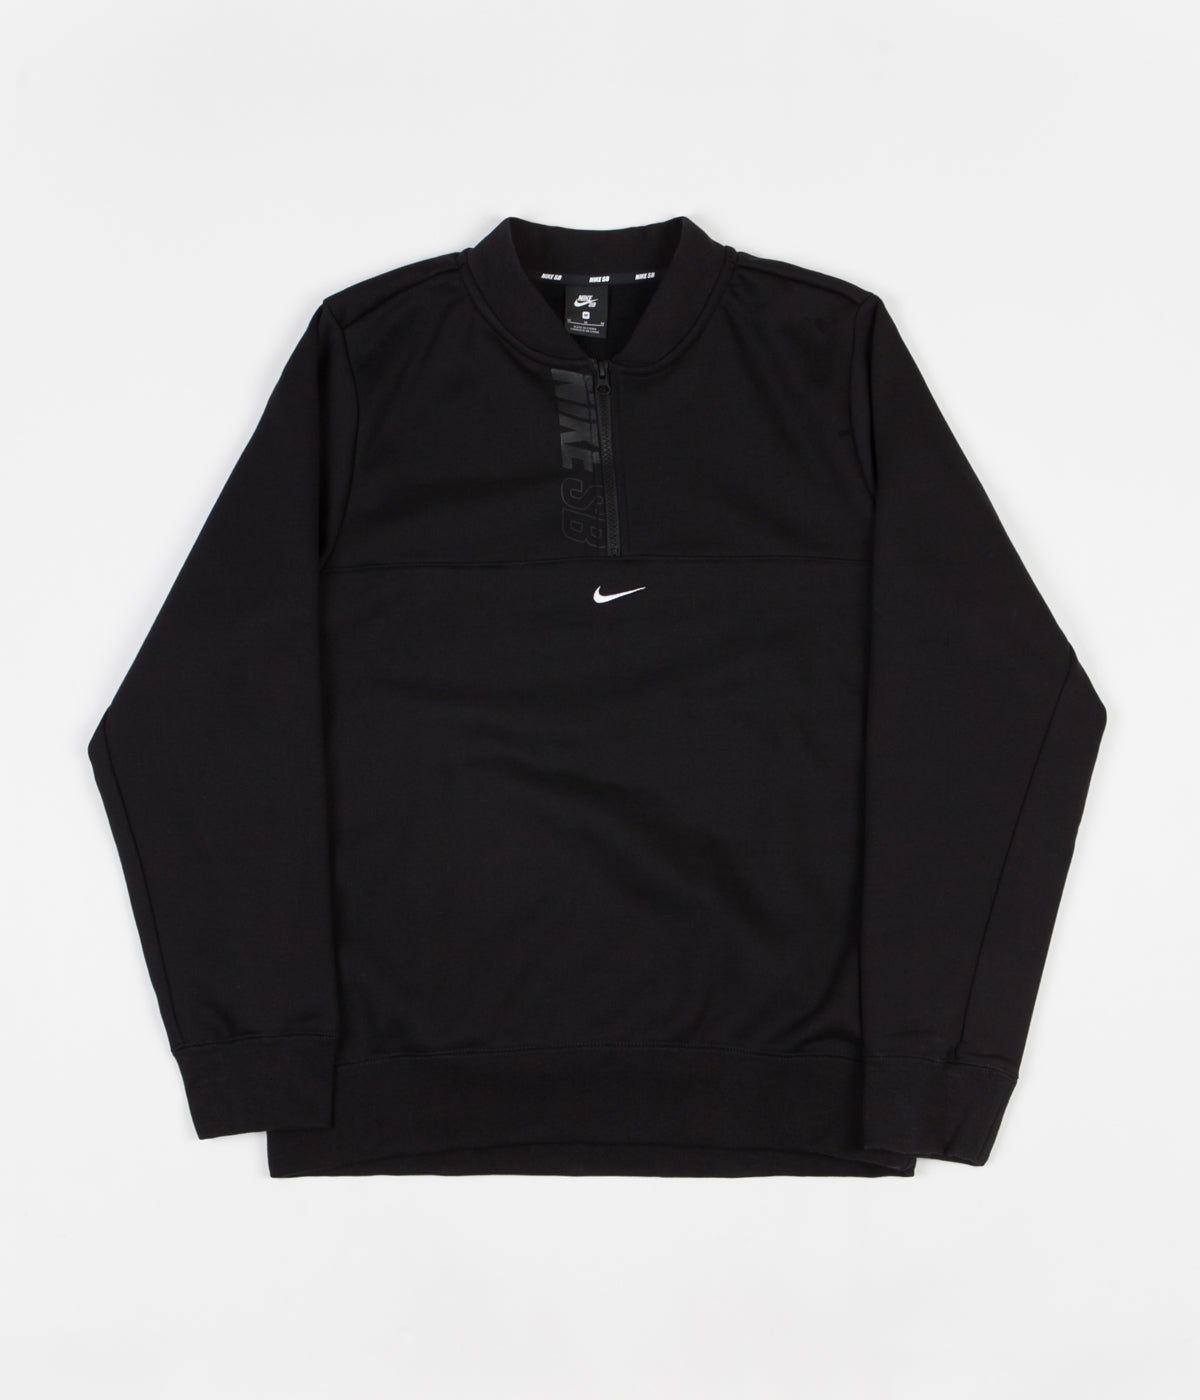 Nike SB Icon 1/2 Zip Sweatshirt - Black / White